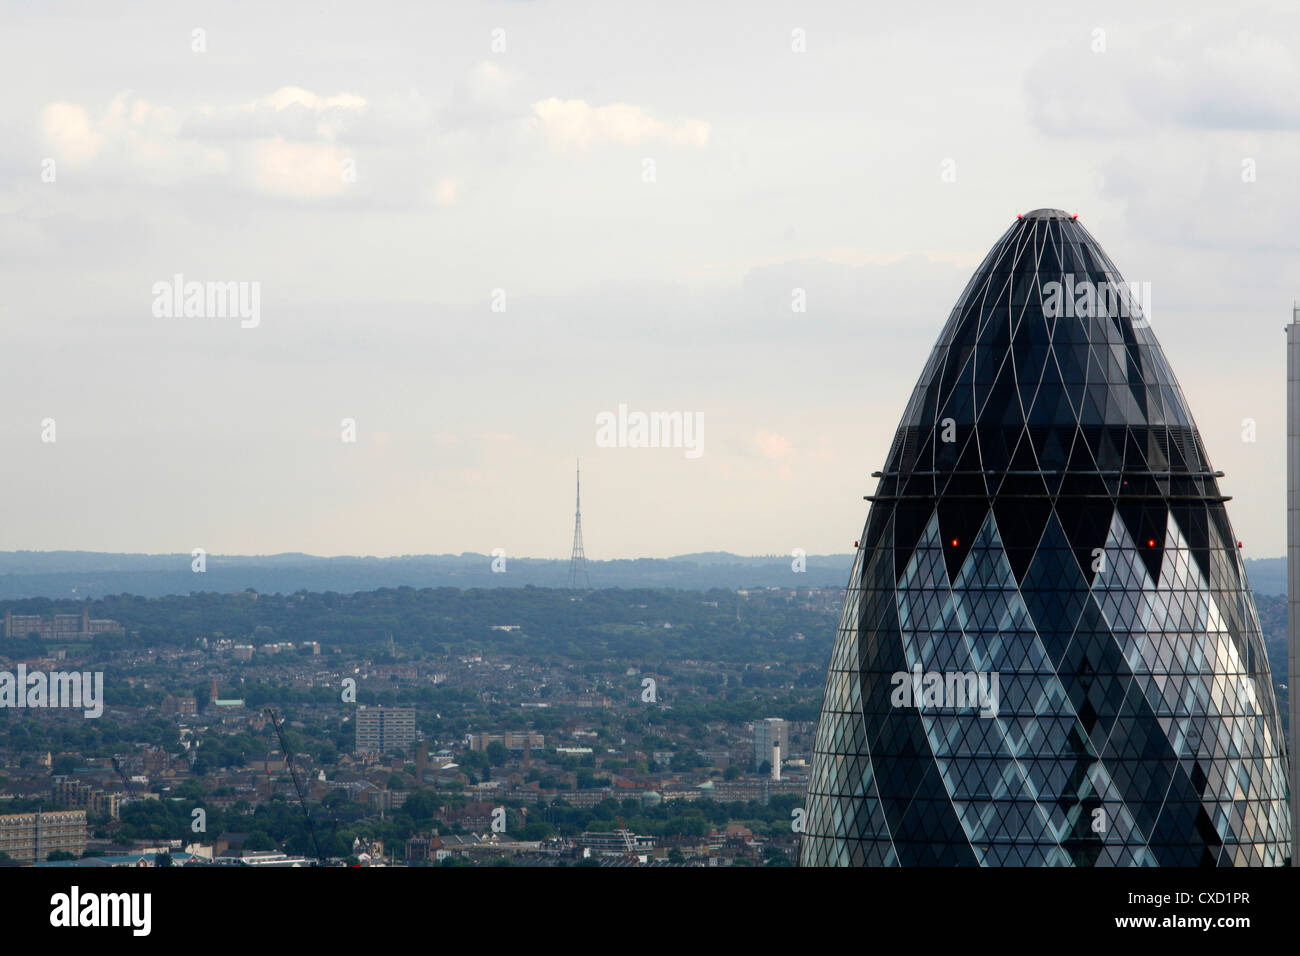 Skyline view of the top of the Gherkin and all the way across south London to the Crystal Palace TV transmitter - Stock Image